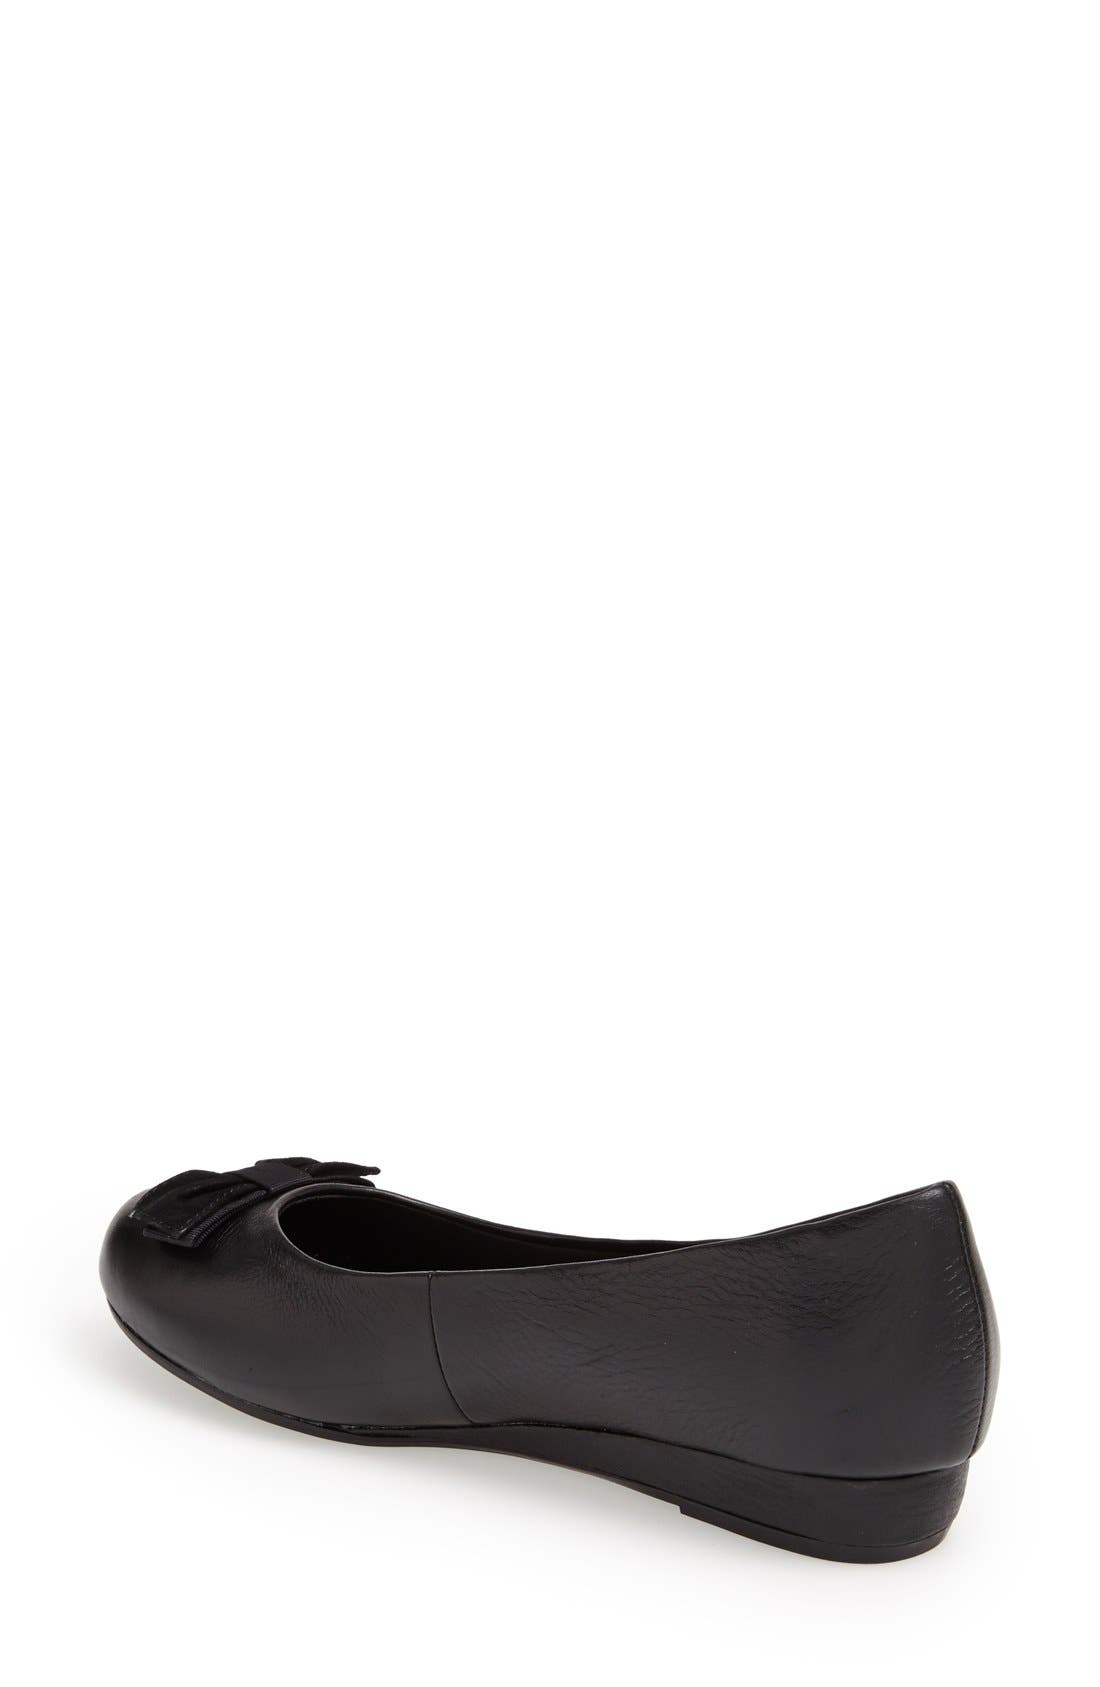 'Lydia' Leather Wedge Pump,                             Alternate thumbnail 2, color,                             001